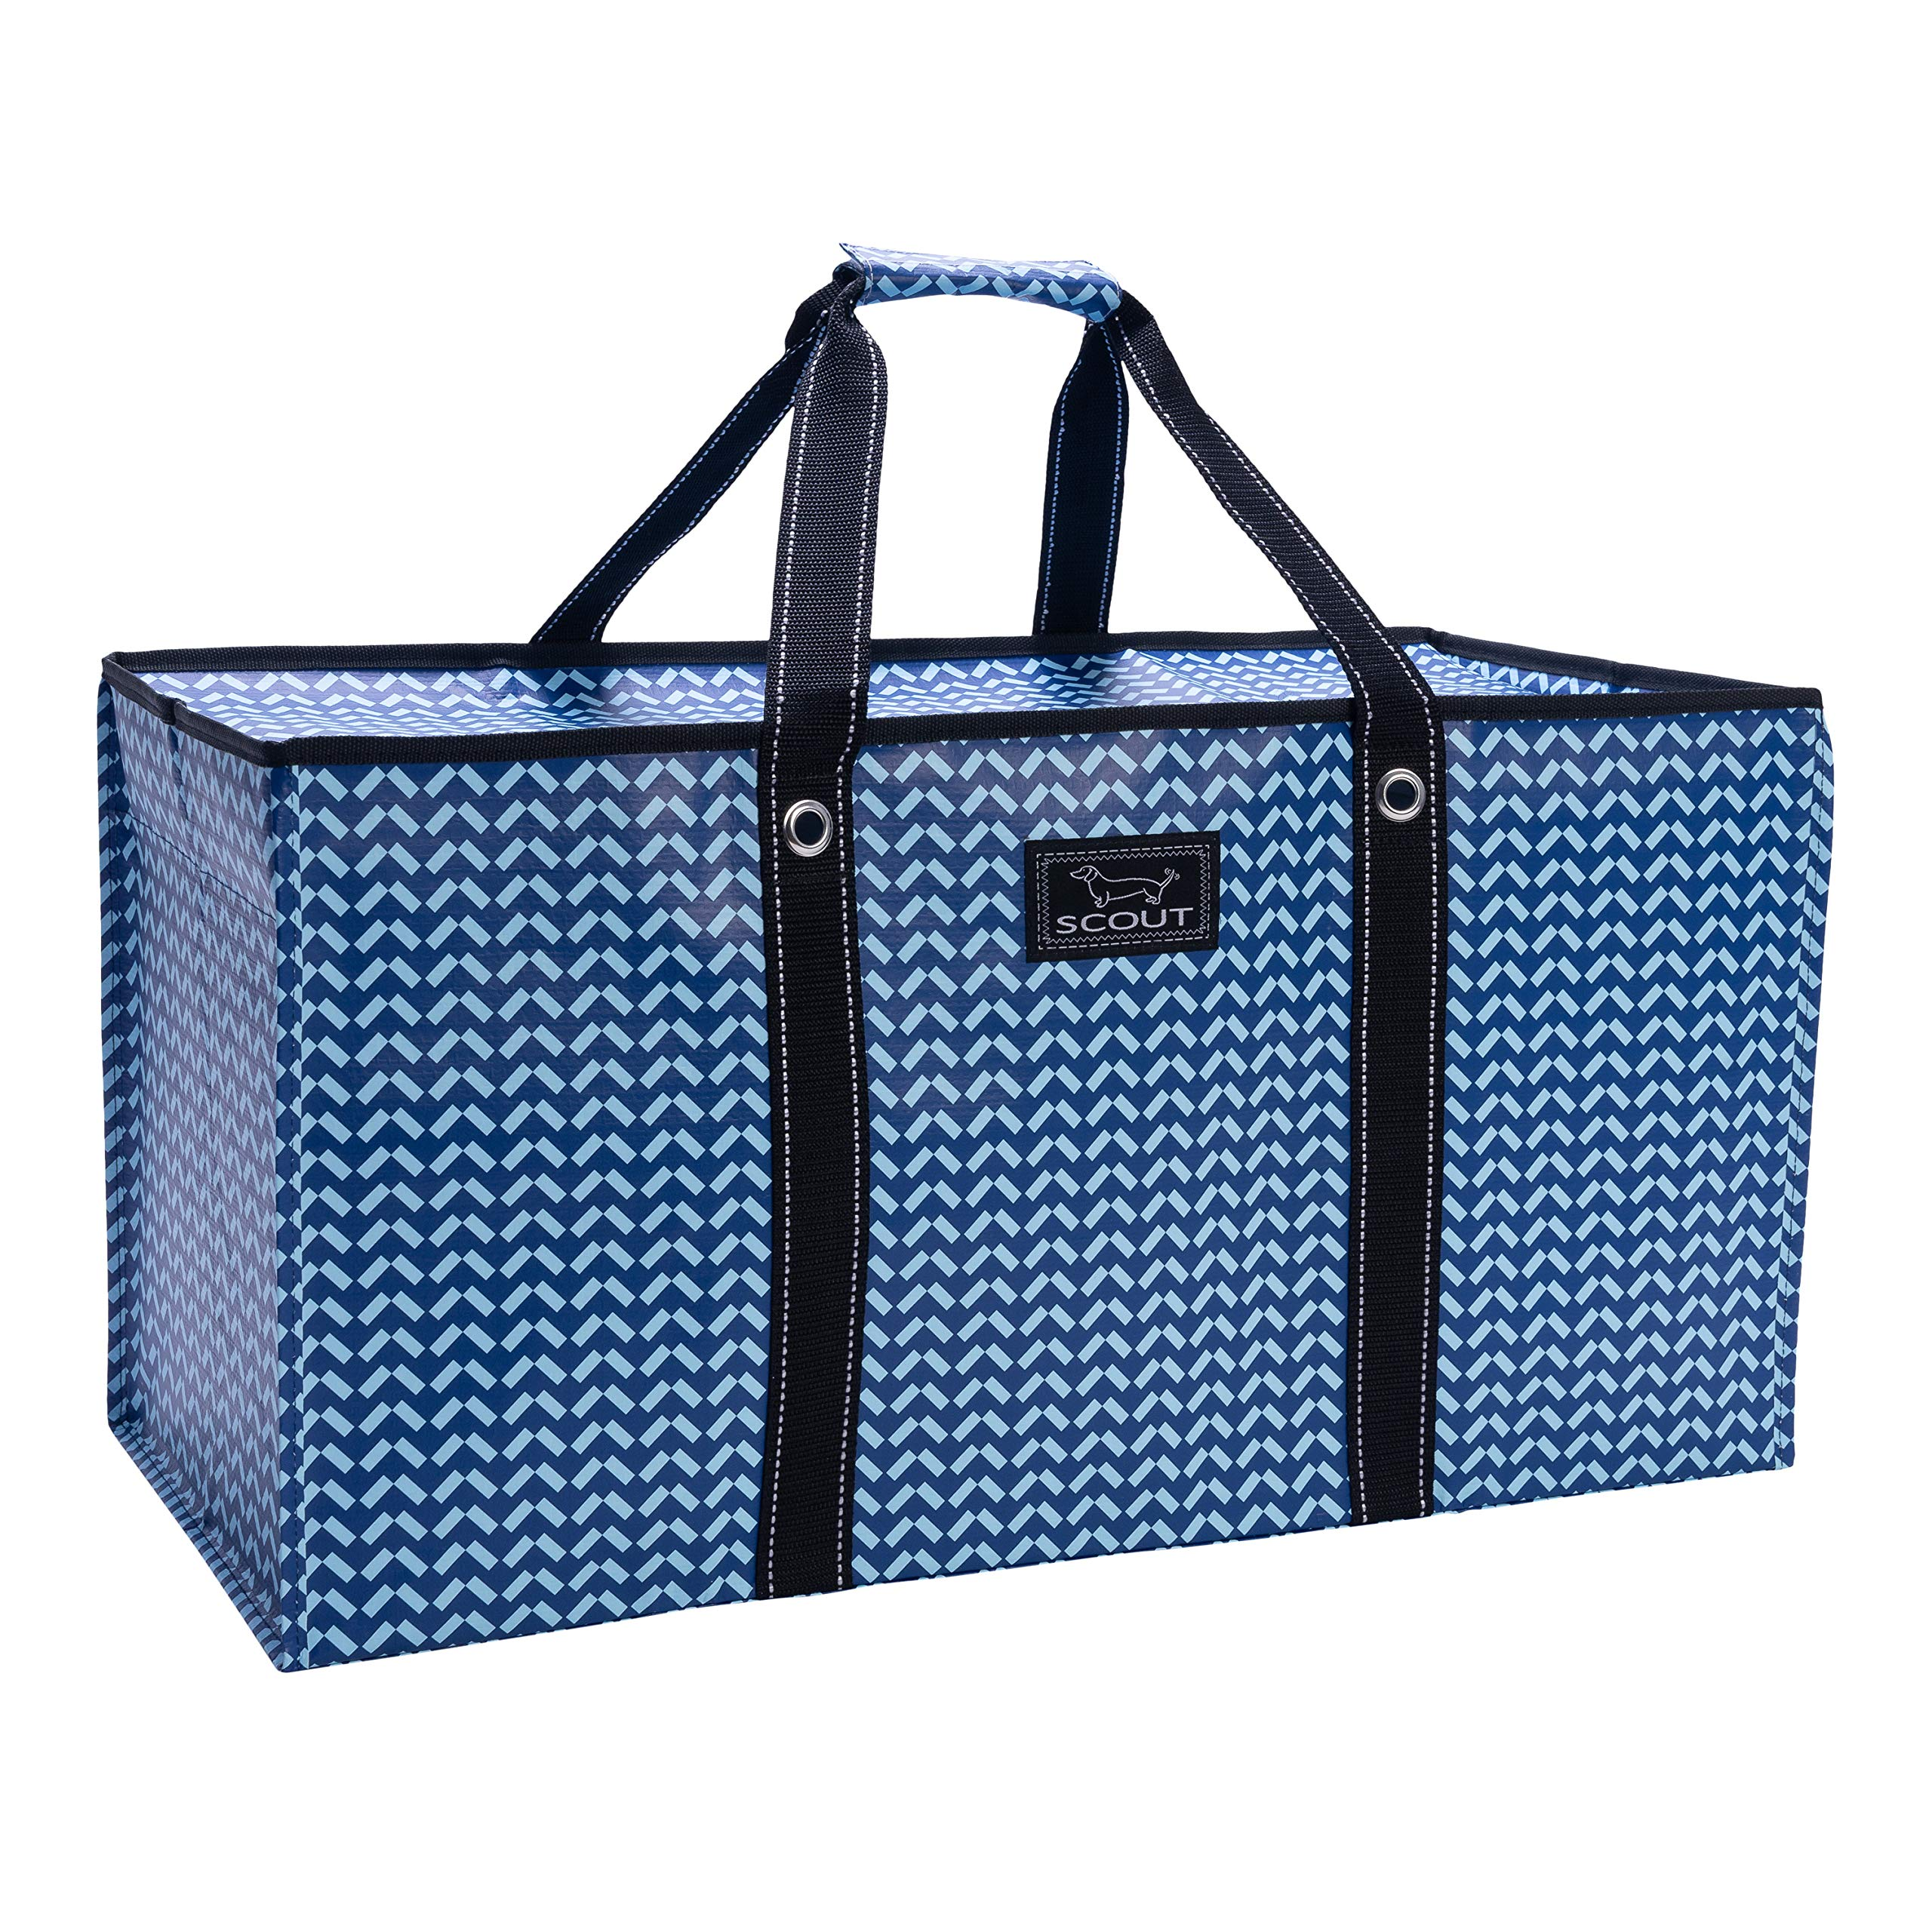 SCOUT Errand Boy Extra Large Tote Bag, For Grocery and Storage, Folds Flat, Reinforced Handles, Water Resistant, Winging It